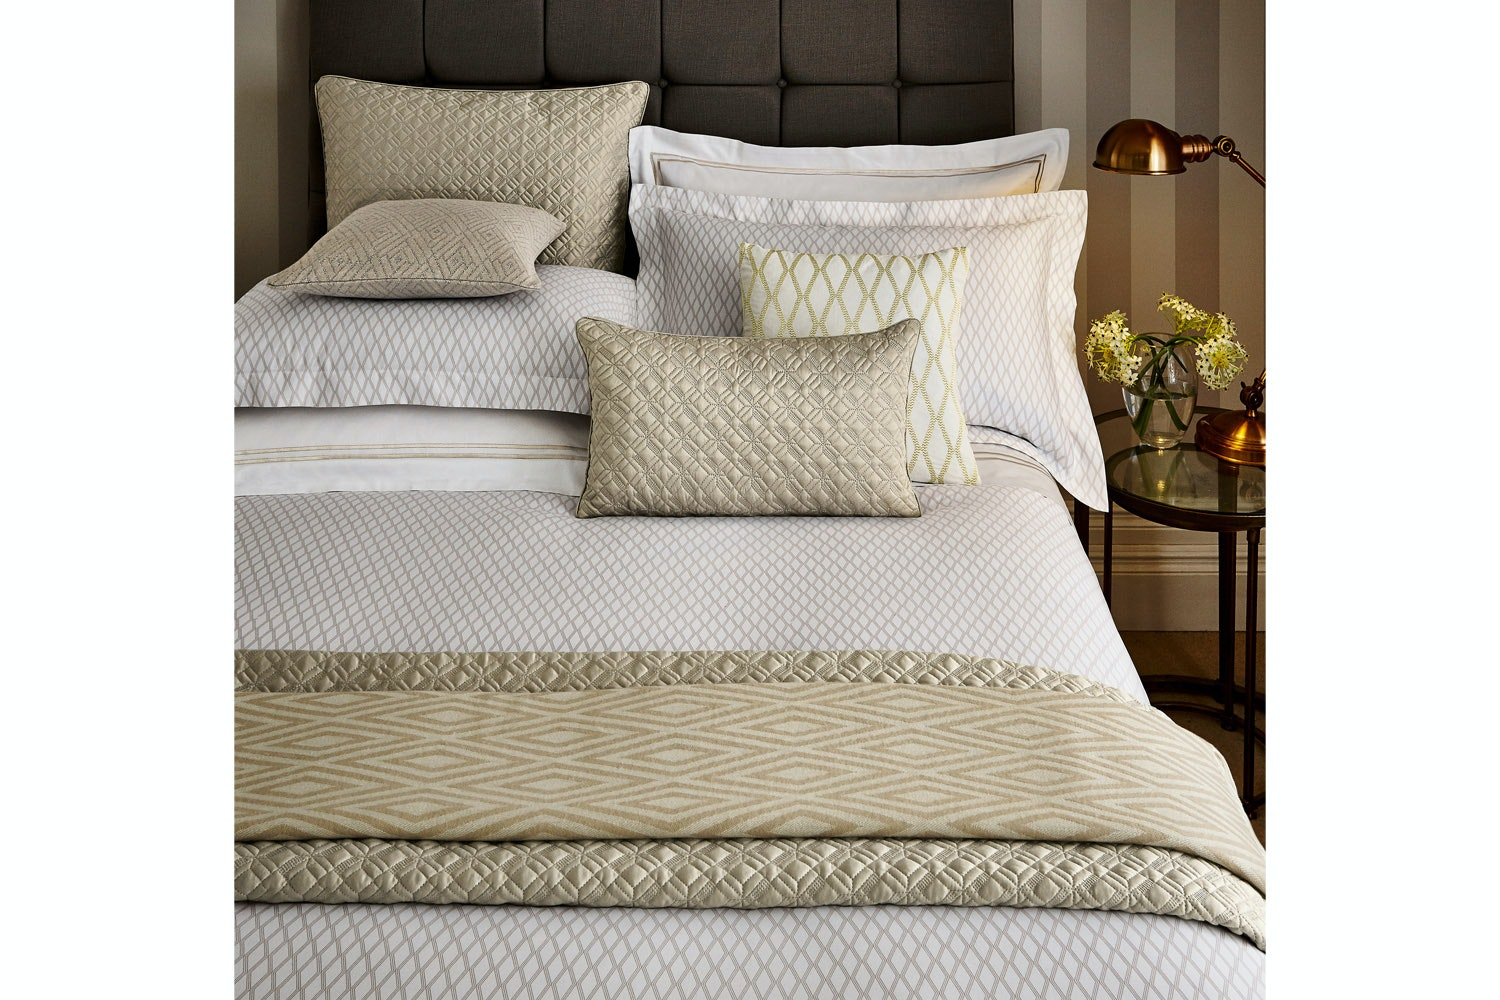 Cadogan Duvet Cover | King